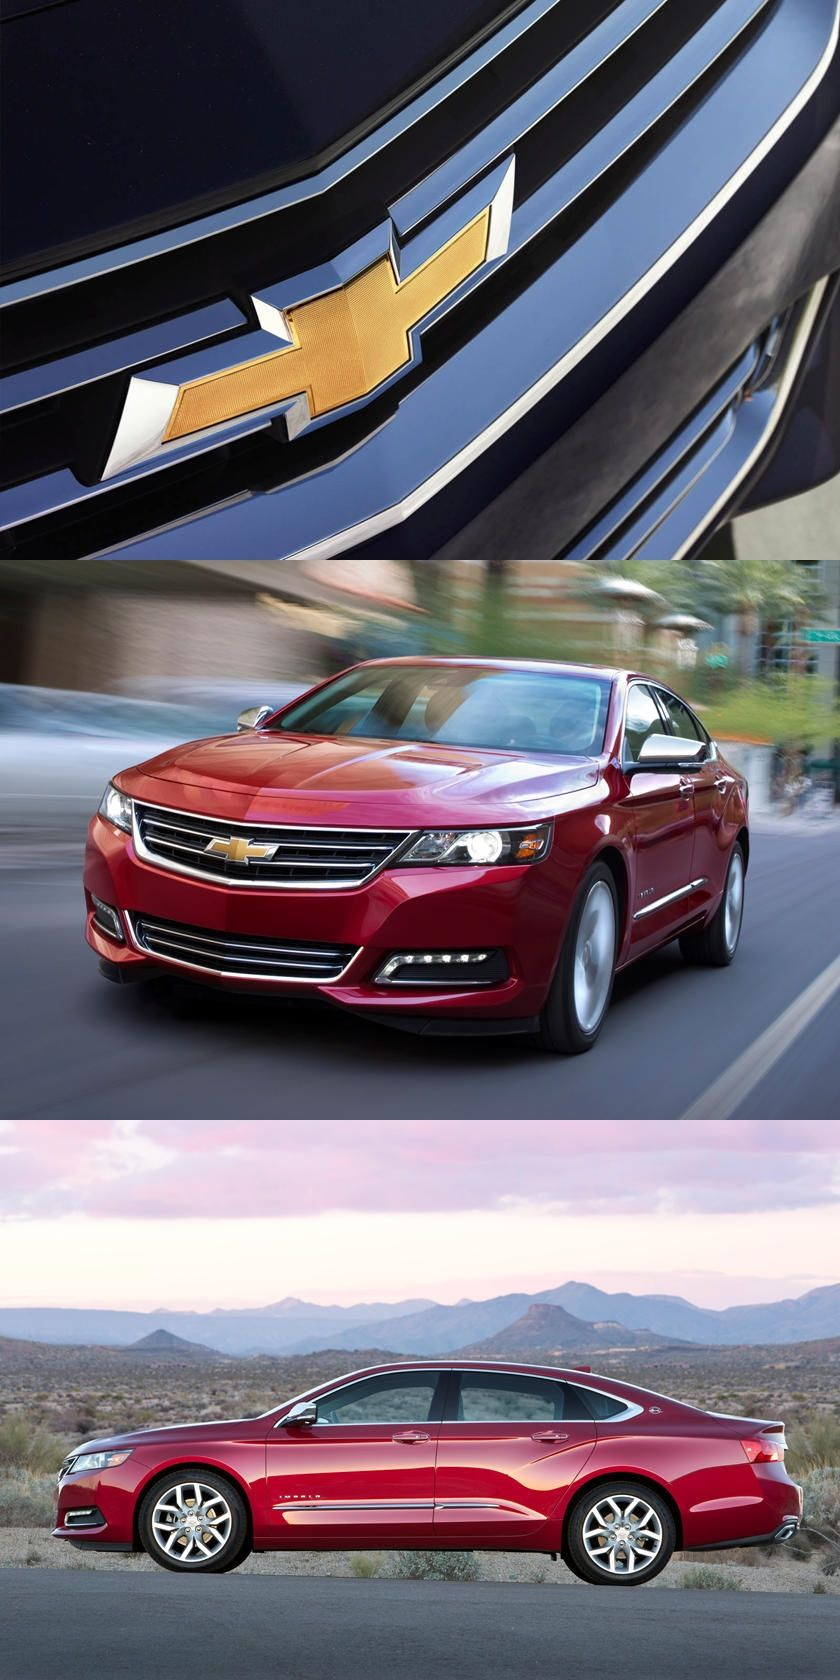 Chevrolet S Iconic Sedan Will End Production This Week All Good Things Must Come To An End In 2020 Sedan Chevrolet Chevy Impala